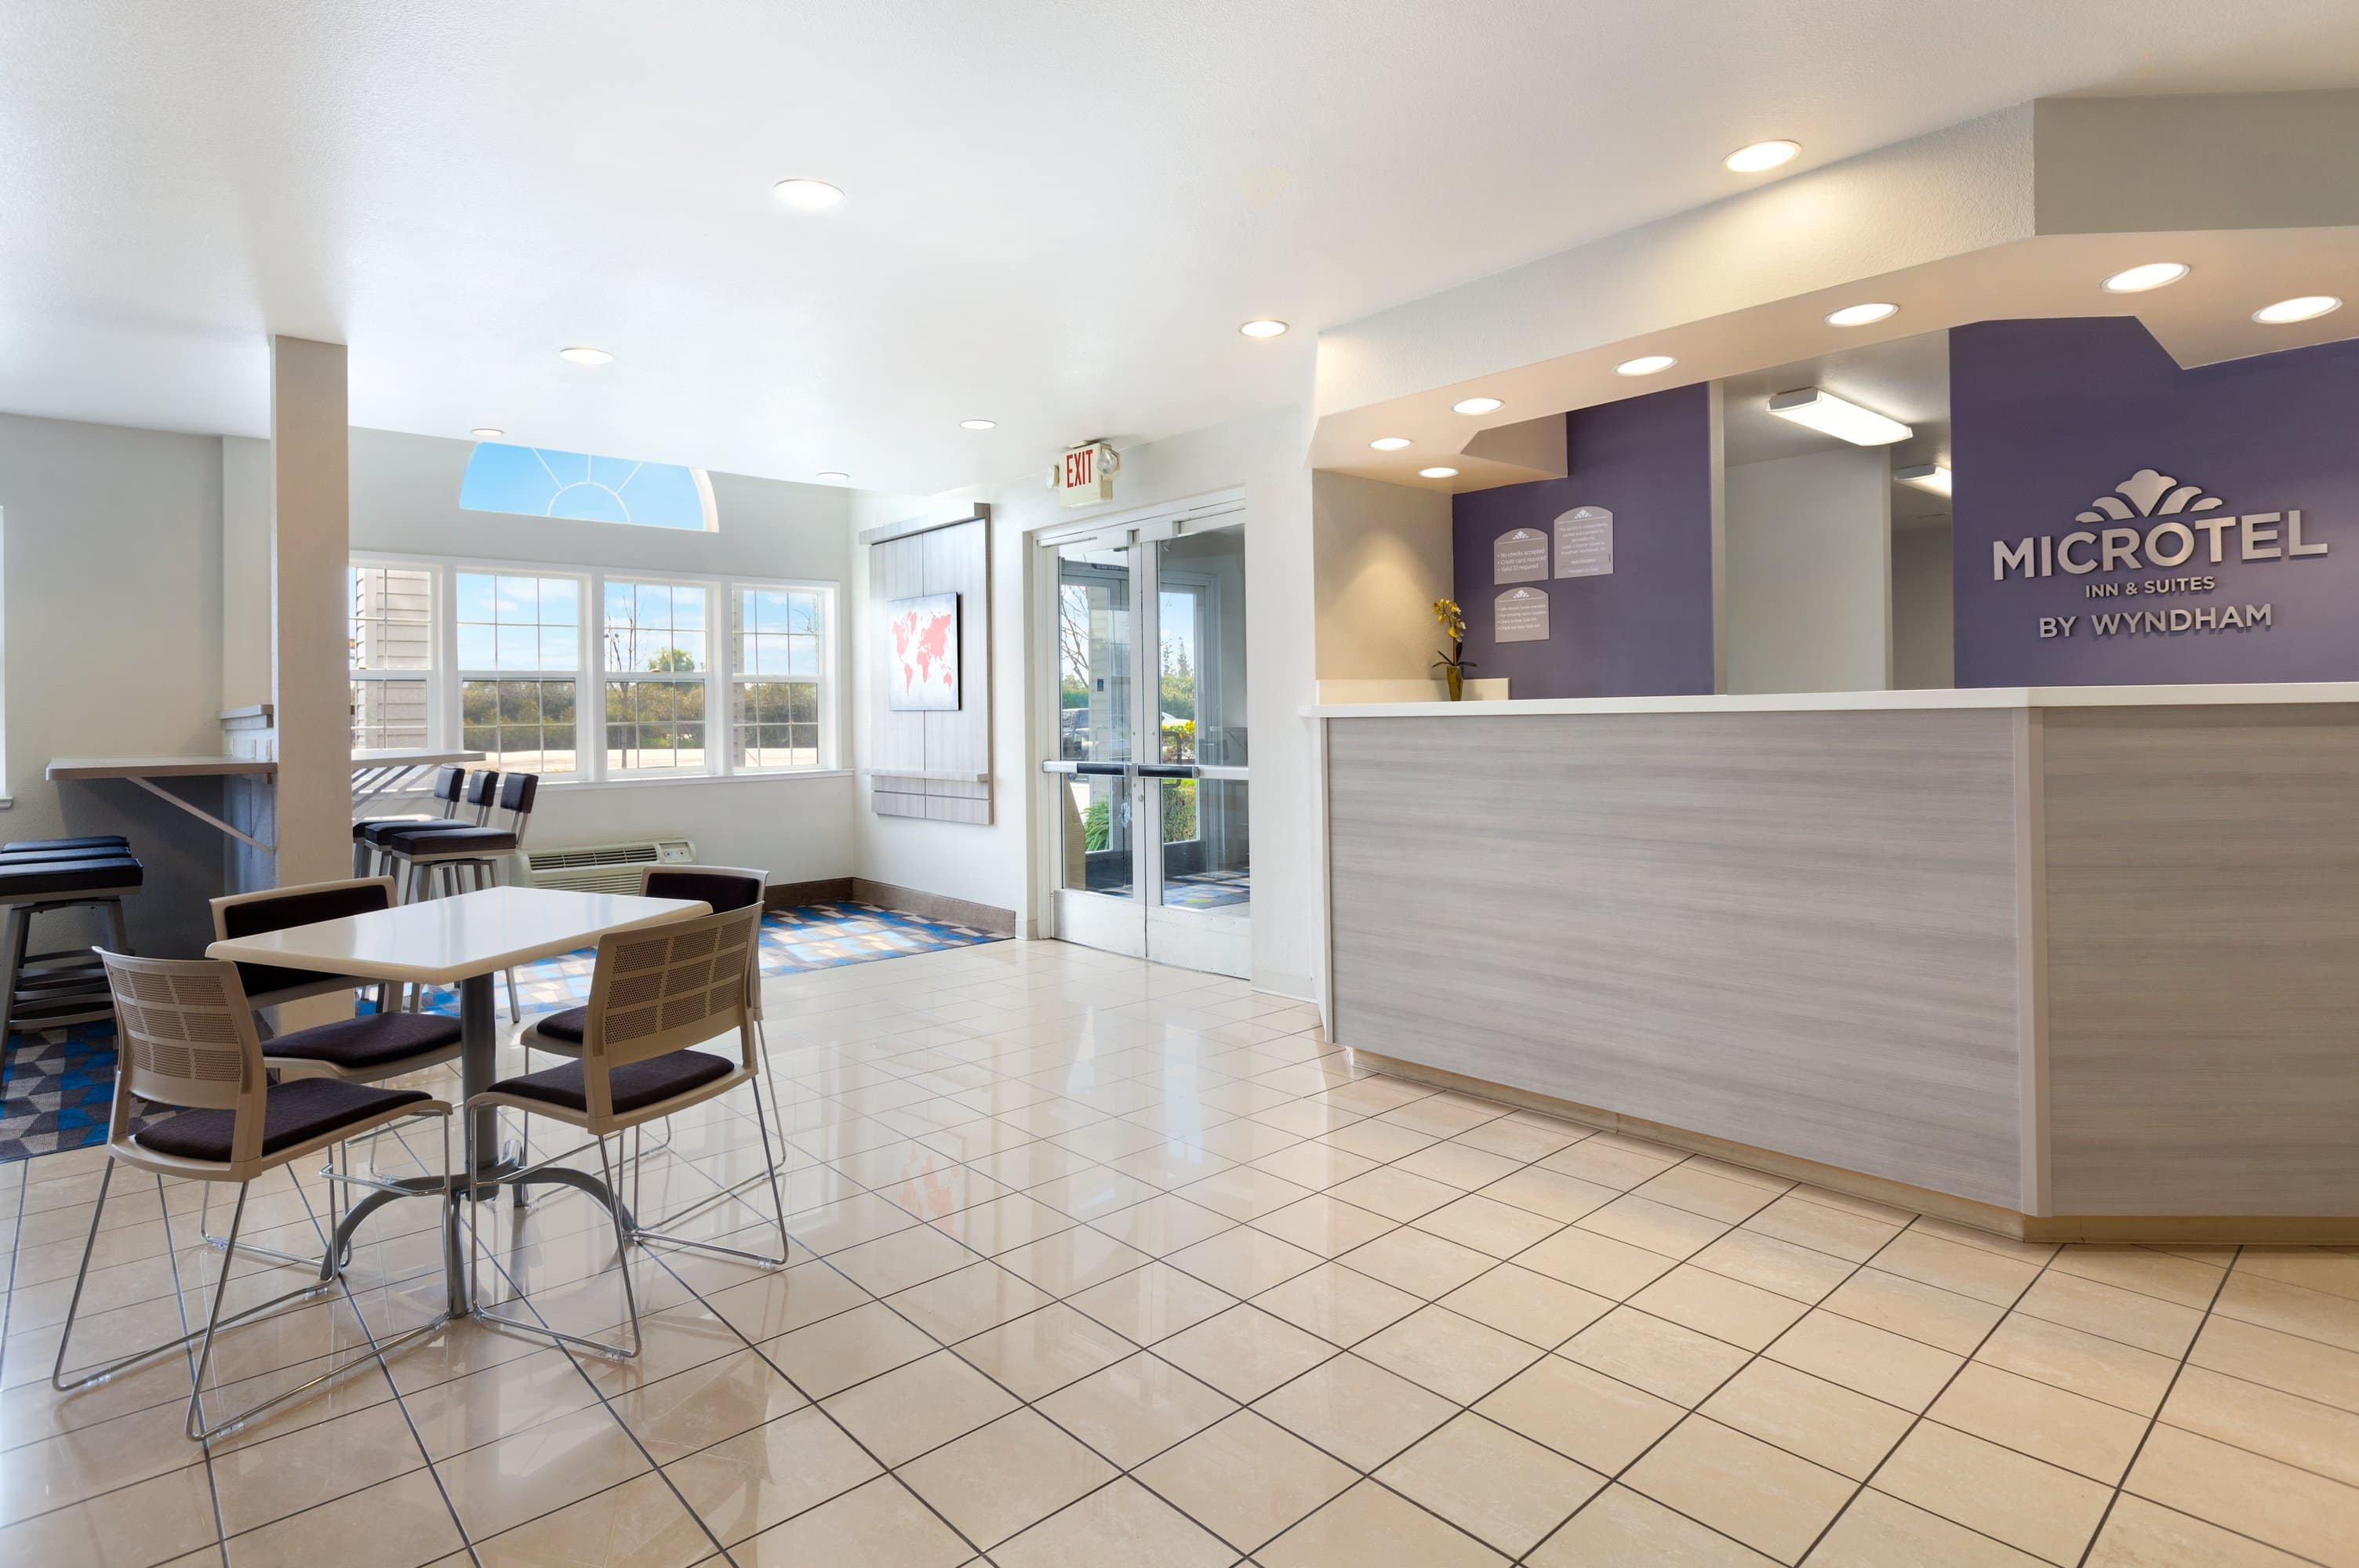 Microtel Inn Suites by Wyndham Modesto Ceres Modesto Ceres